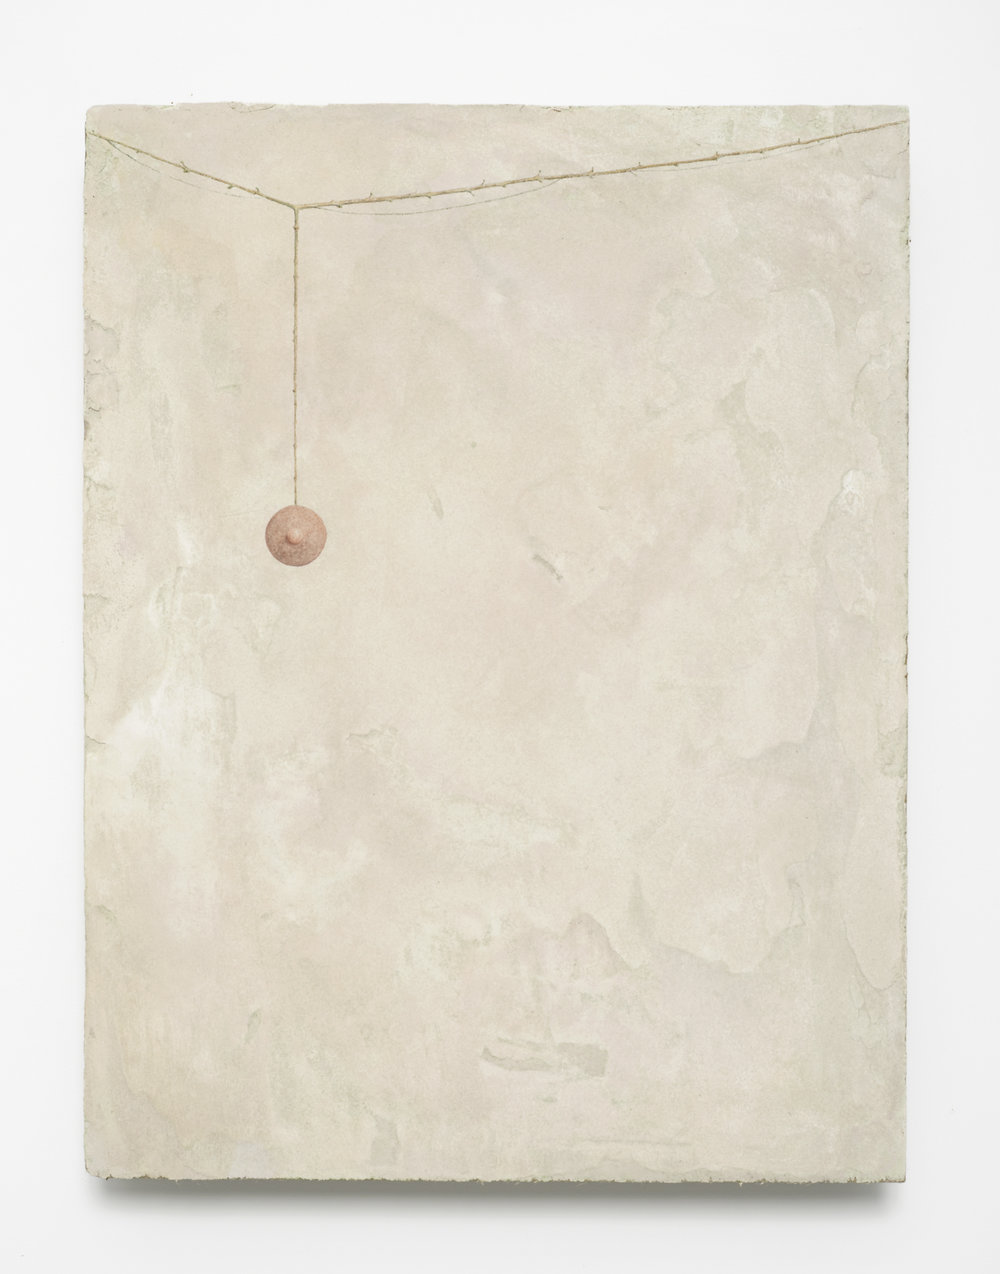 David Thorpe,  A Ripening , 2012, Oak, sand, clay, hair, dung, slake lime, pigment, rabbit skin glue, 56.5 x 43 x 7 cm, Courtesy the artist and Maureen Paley, London